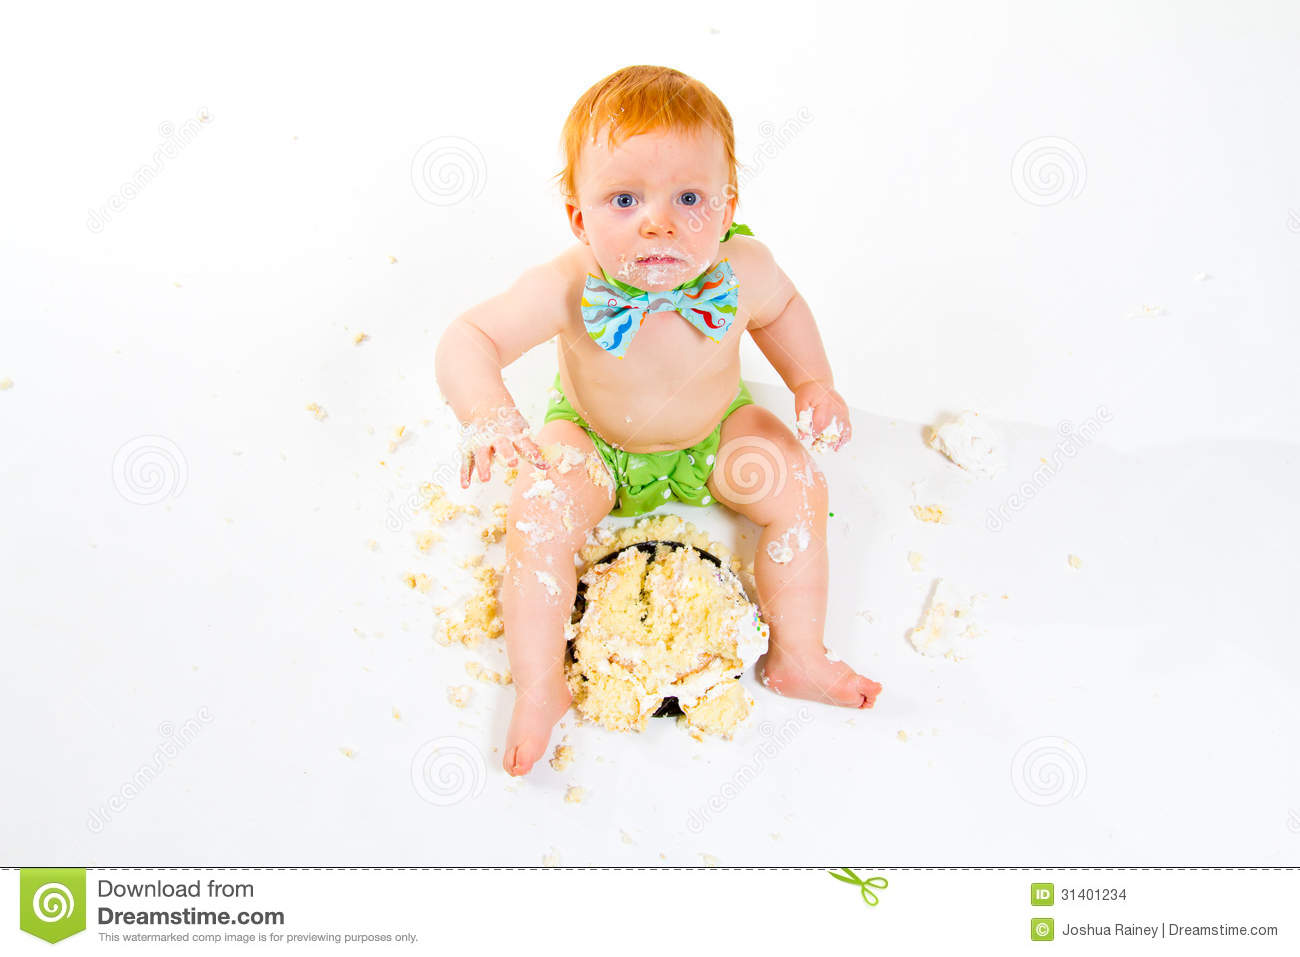 Cake Images For One Year Old Boy : One Year Old Cake Smash Stock Images - Image: 31401234